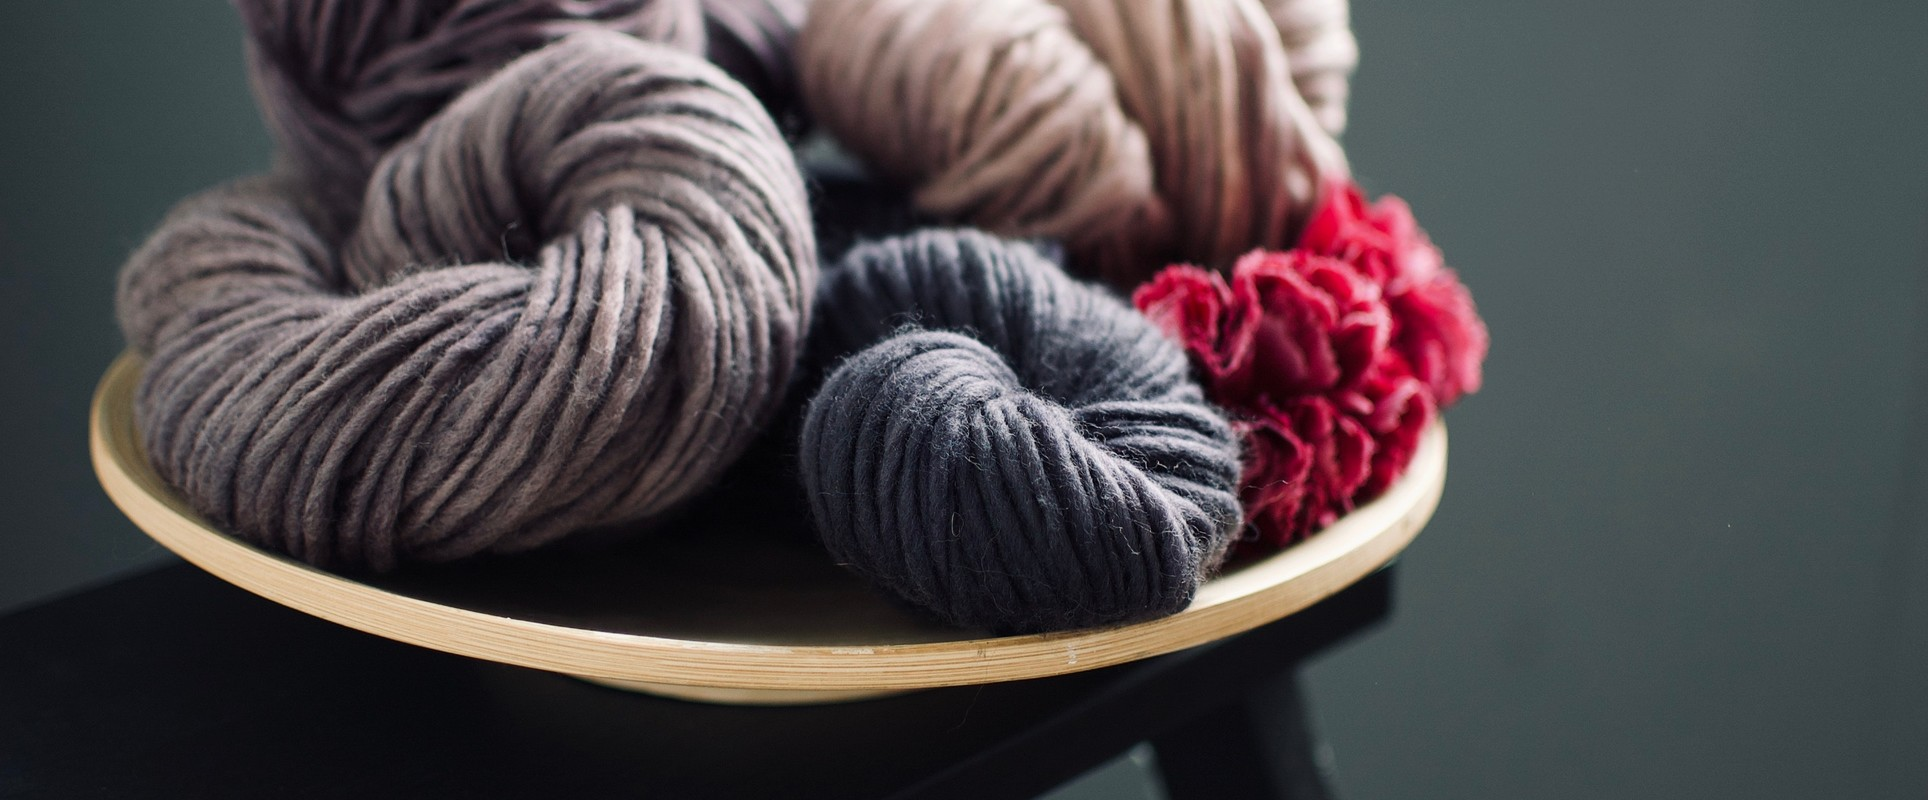 29f2aa4cb88 Everything you need to know about how to dye yarn | LoveKnitting